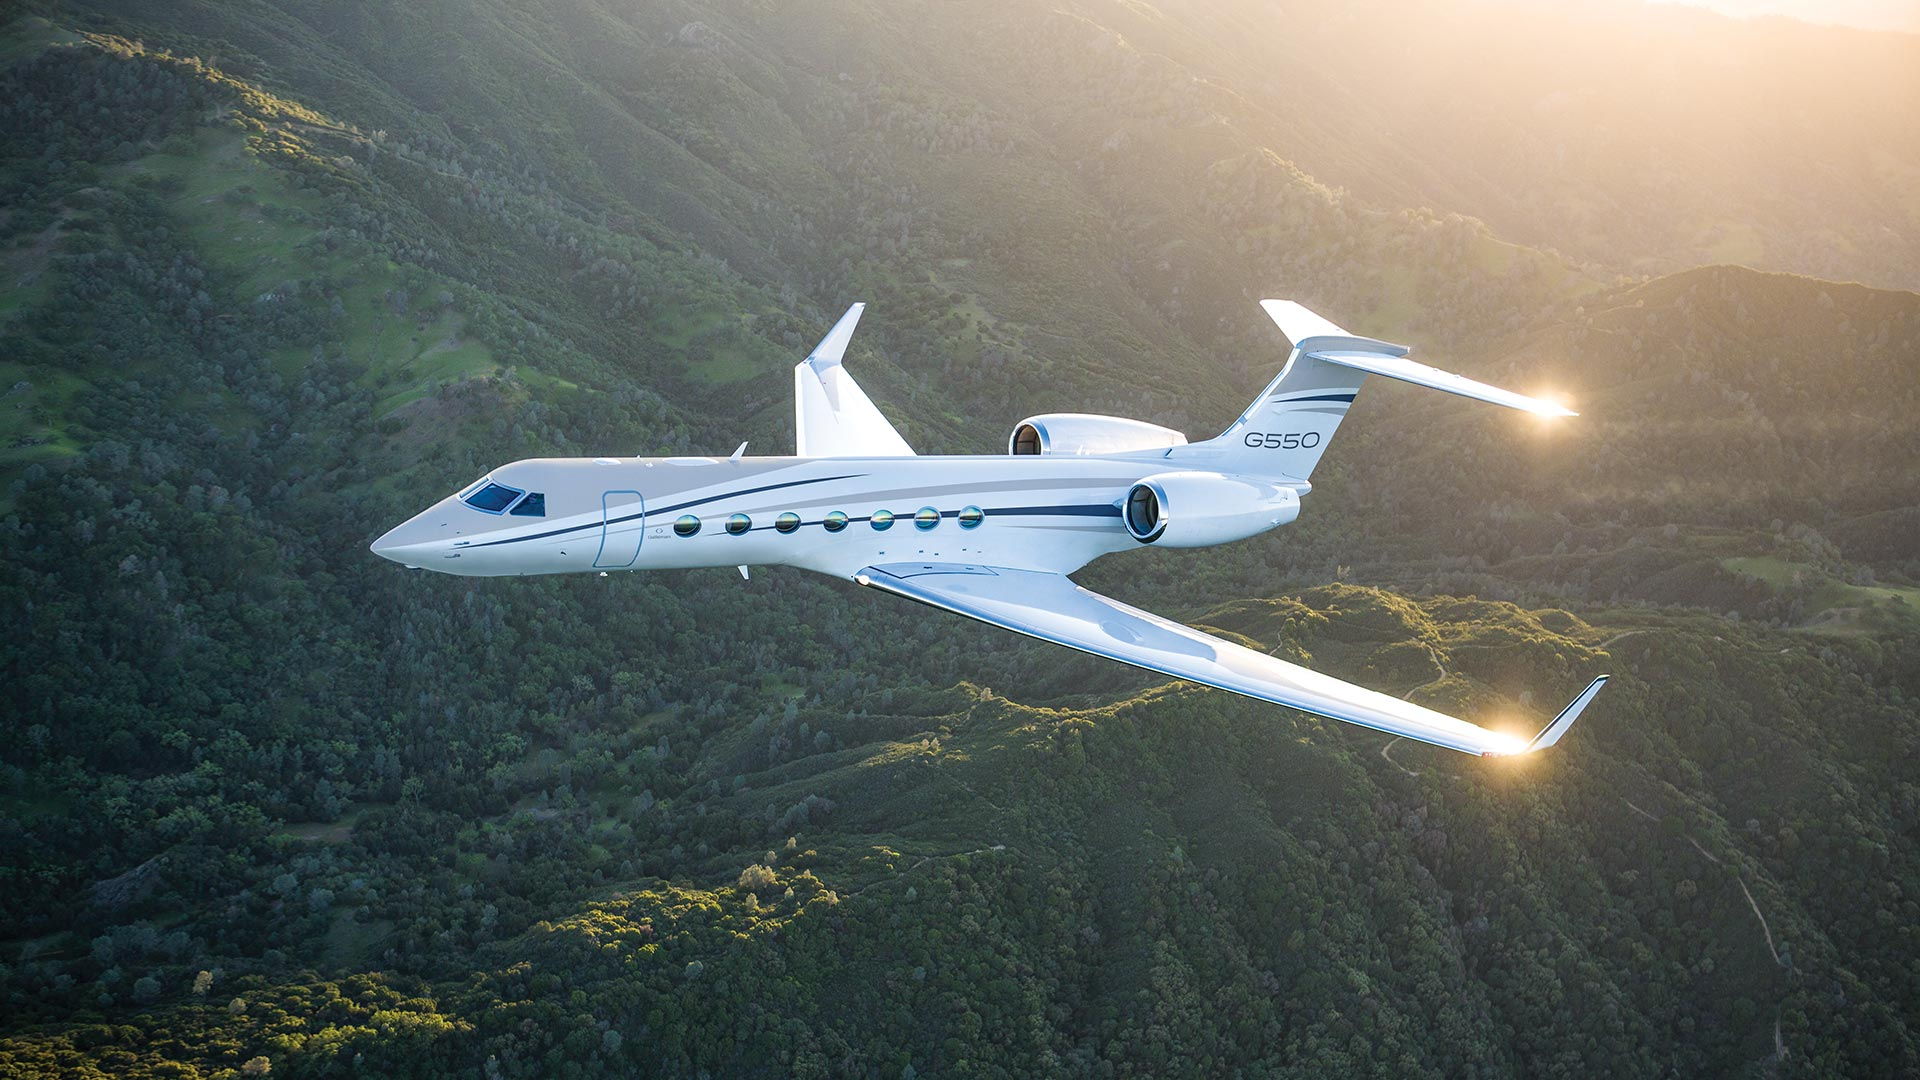 G550 aircraft flying over mountains